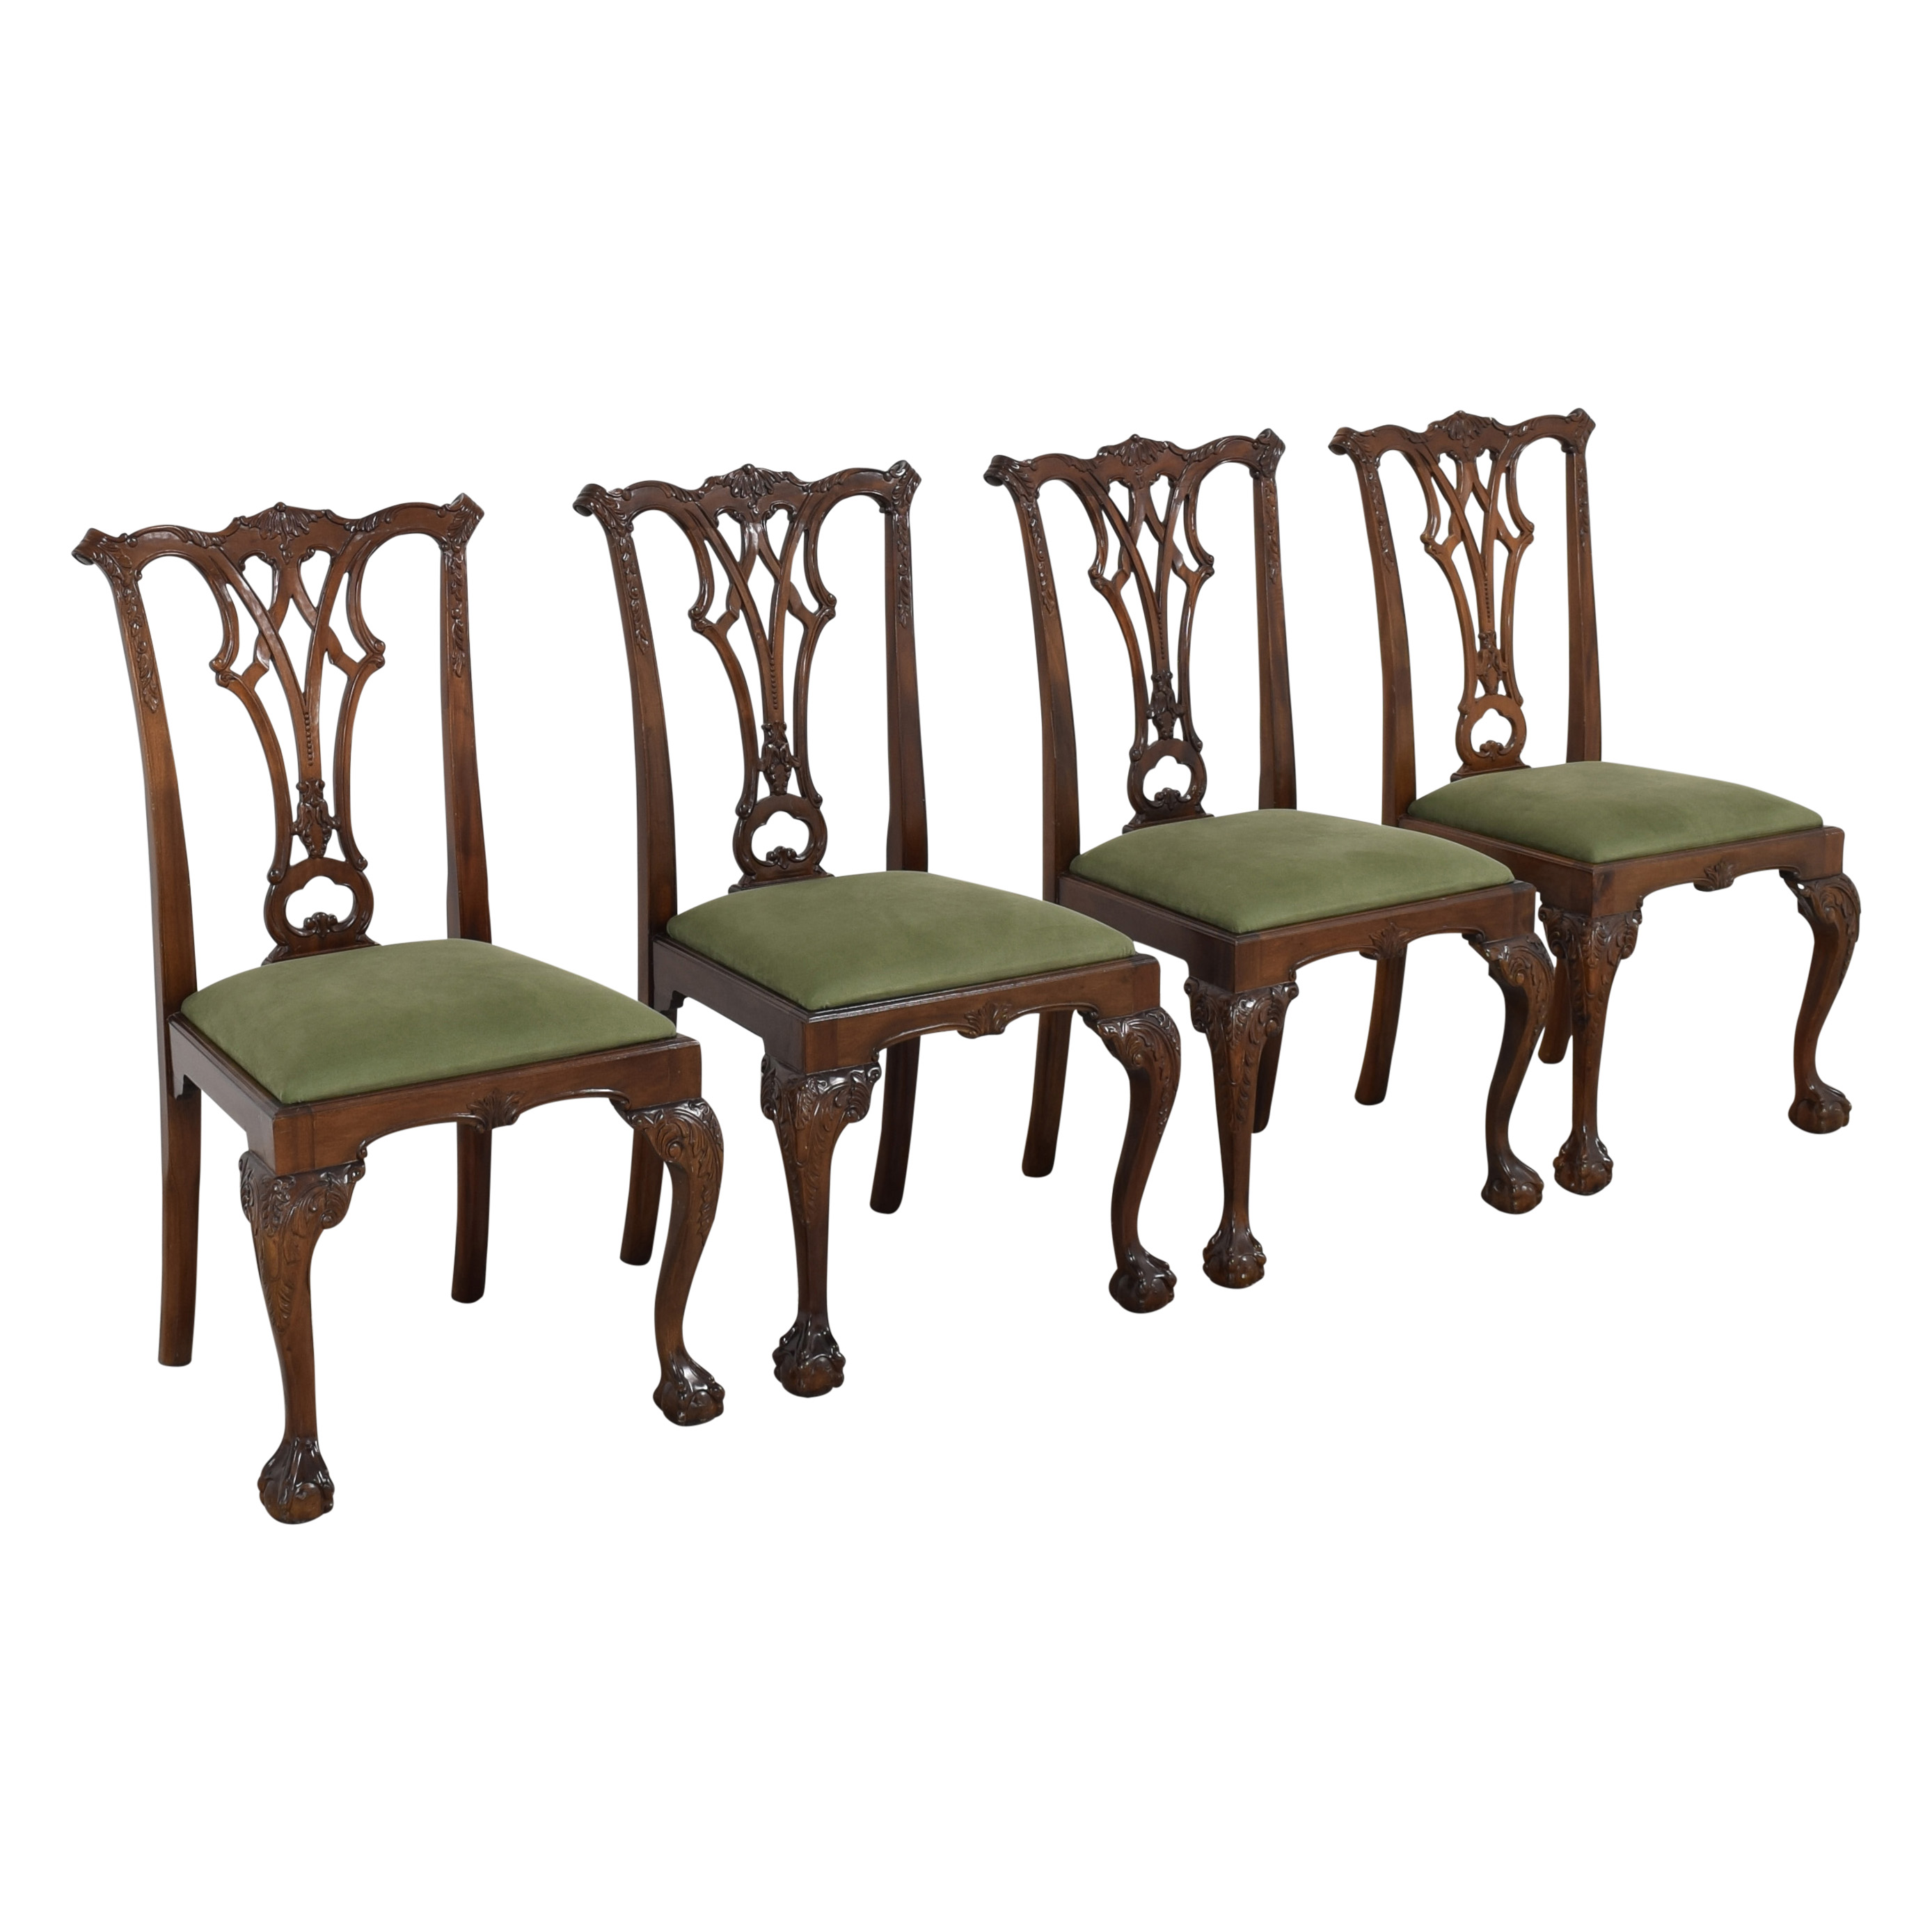 buy Greenbaum Interiors Queen Anne Style Dining Chairs online